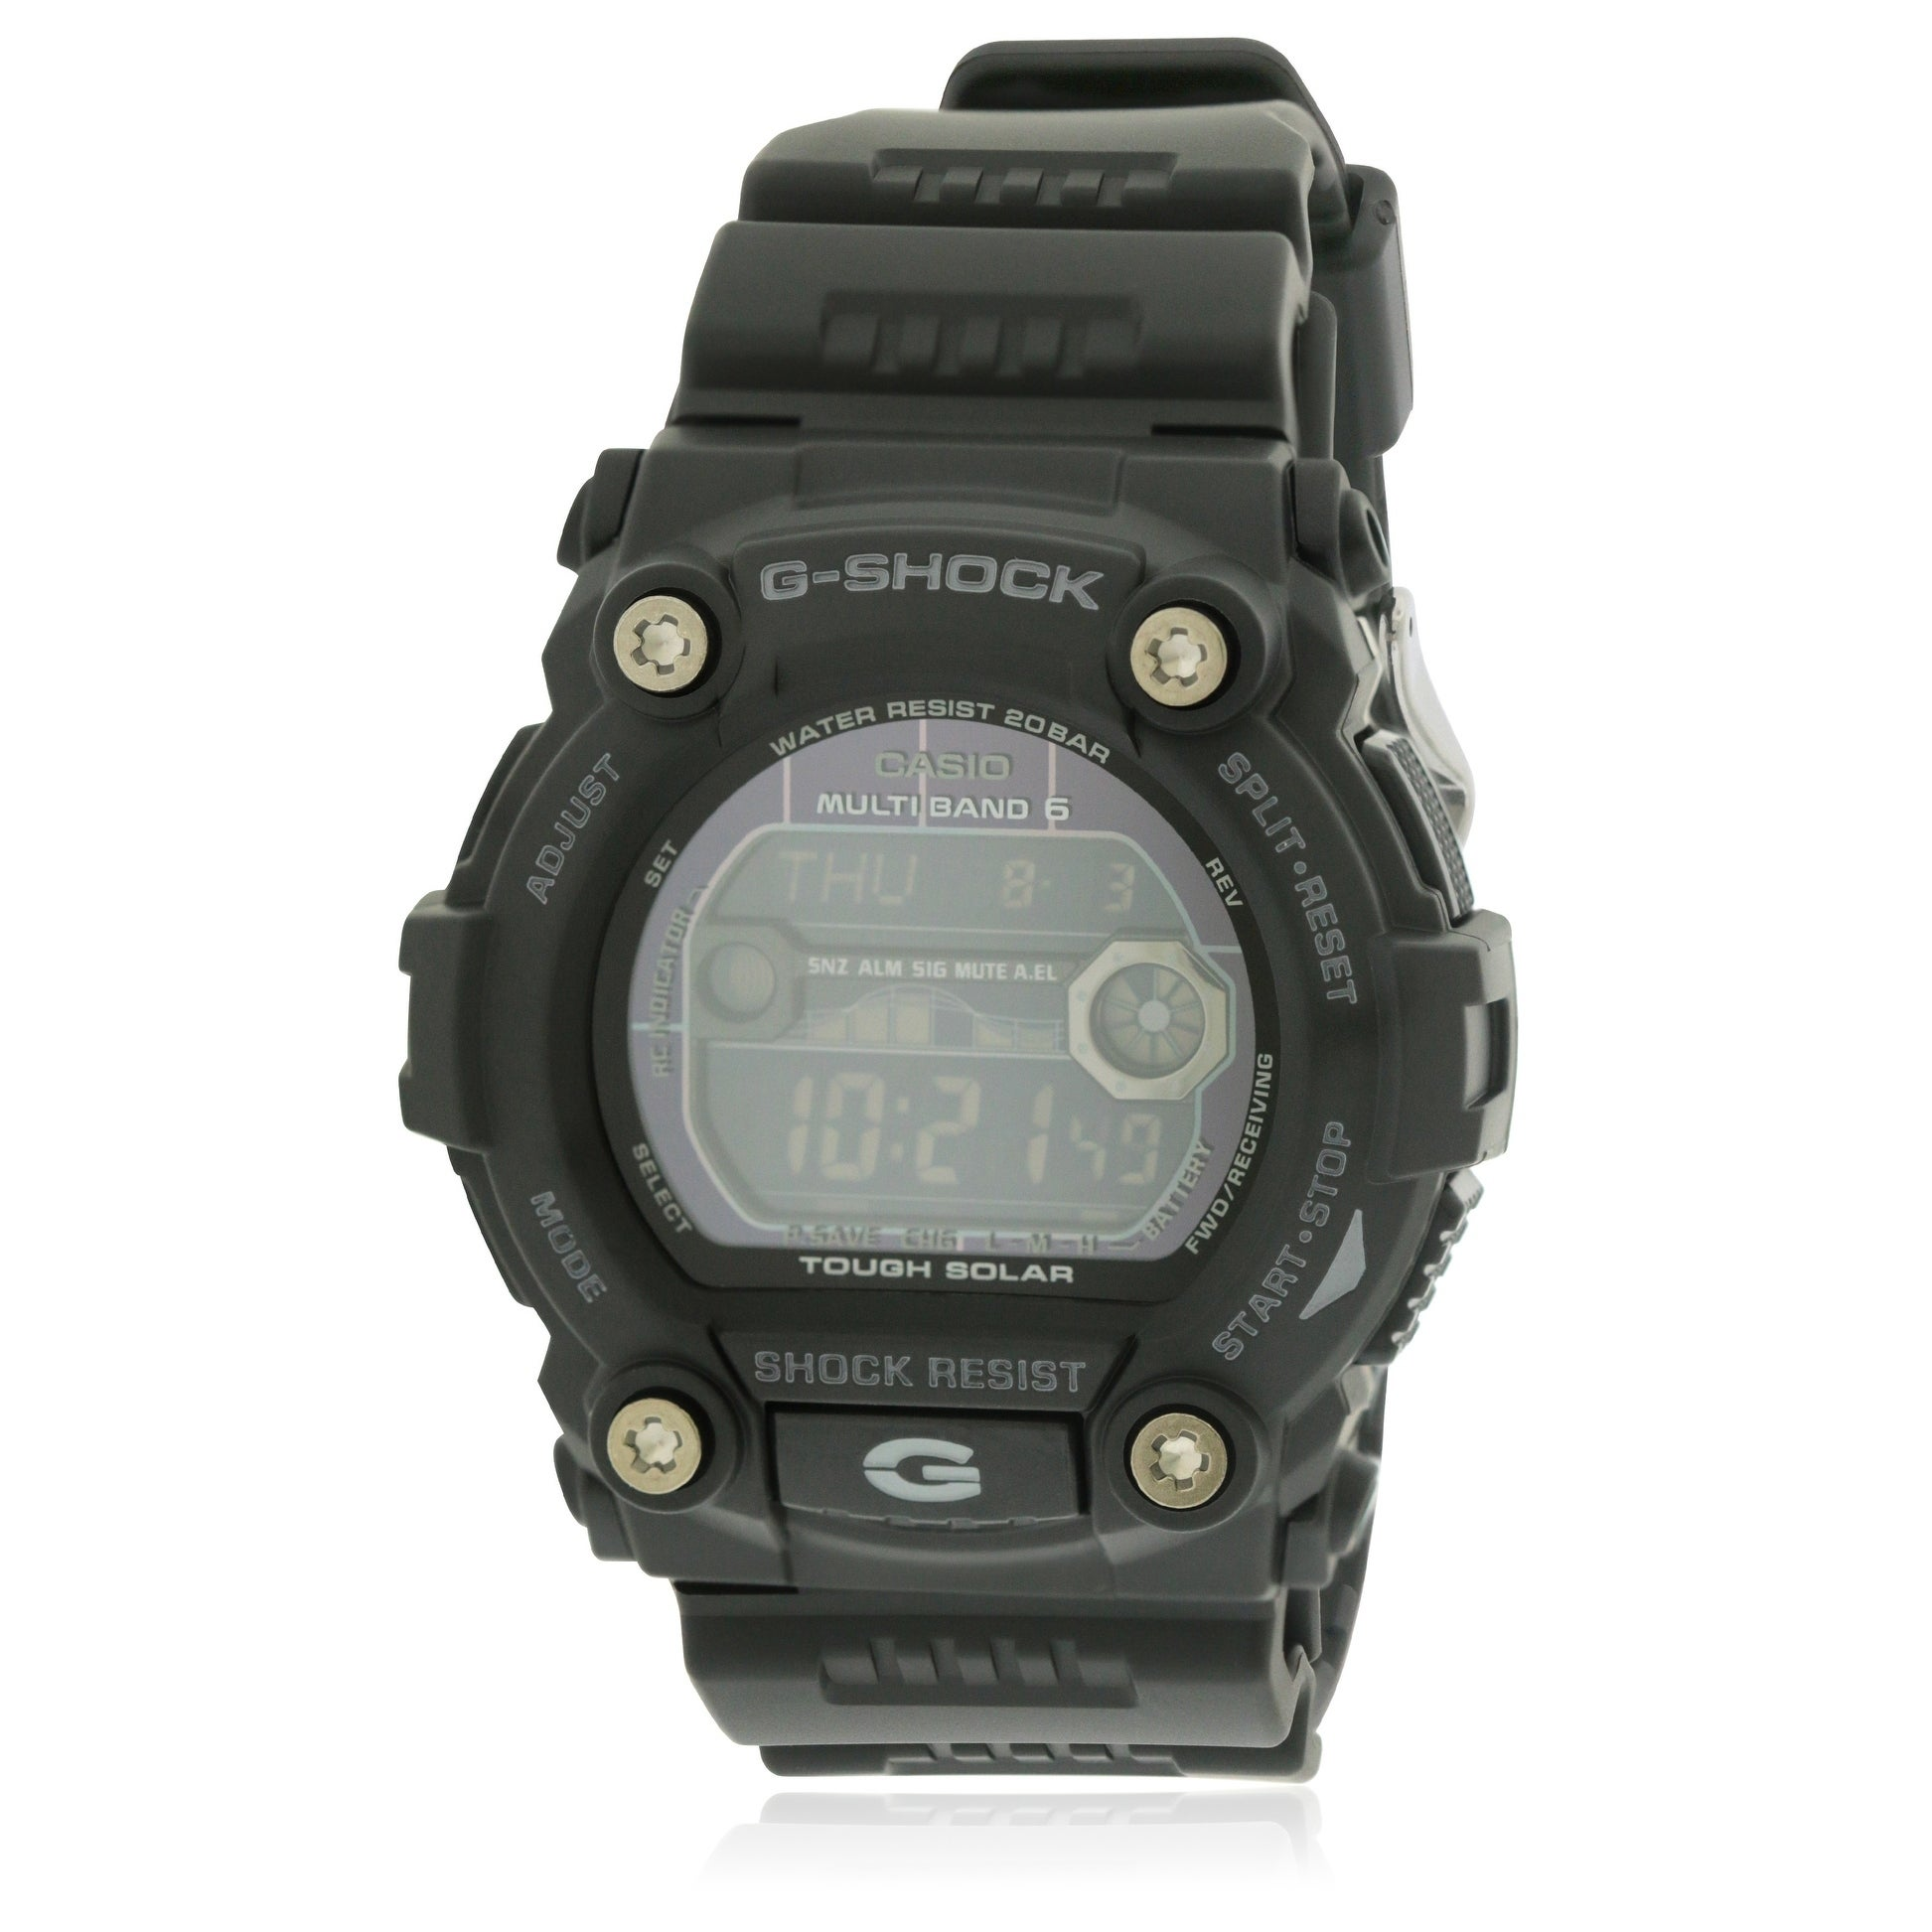 22c807c20dcf Shop Casio G-Shock Mens Watch GW7900B-1 - Free Shipping Today - Overstock -  17238061